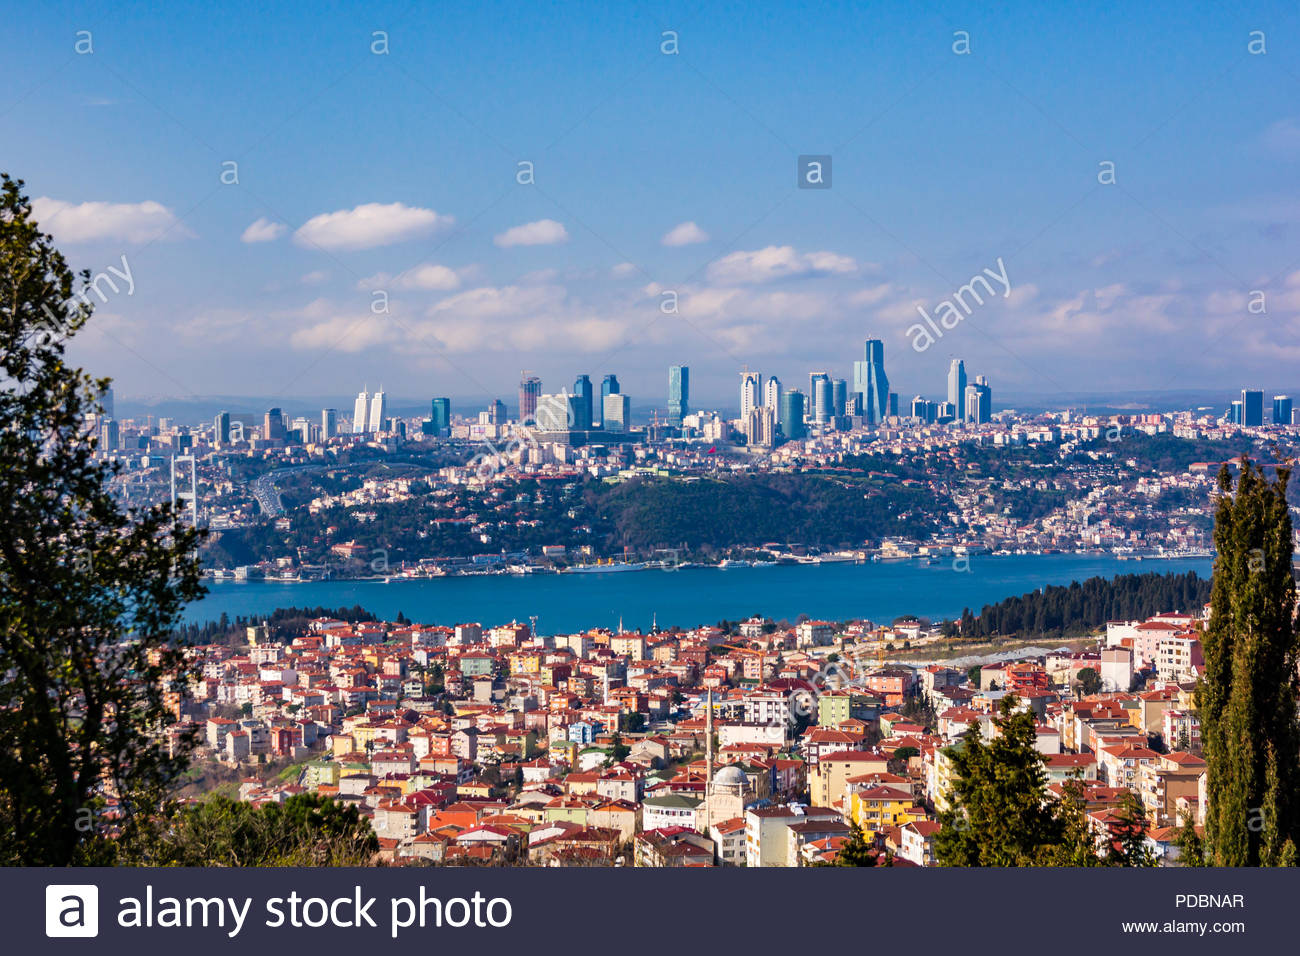 A view of the European side of Istanbul from a hilltop - Stock Image